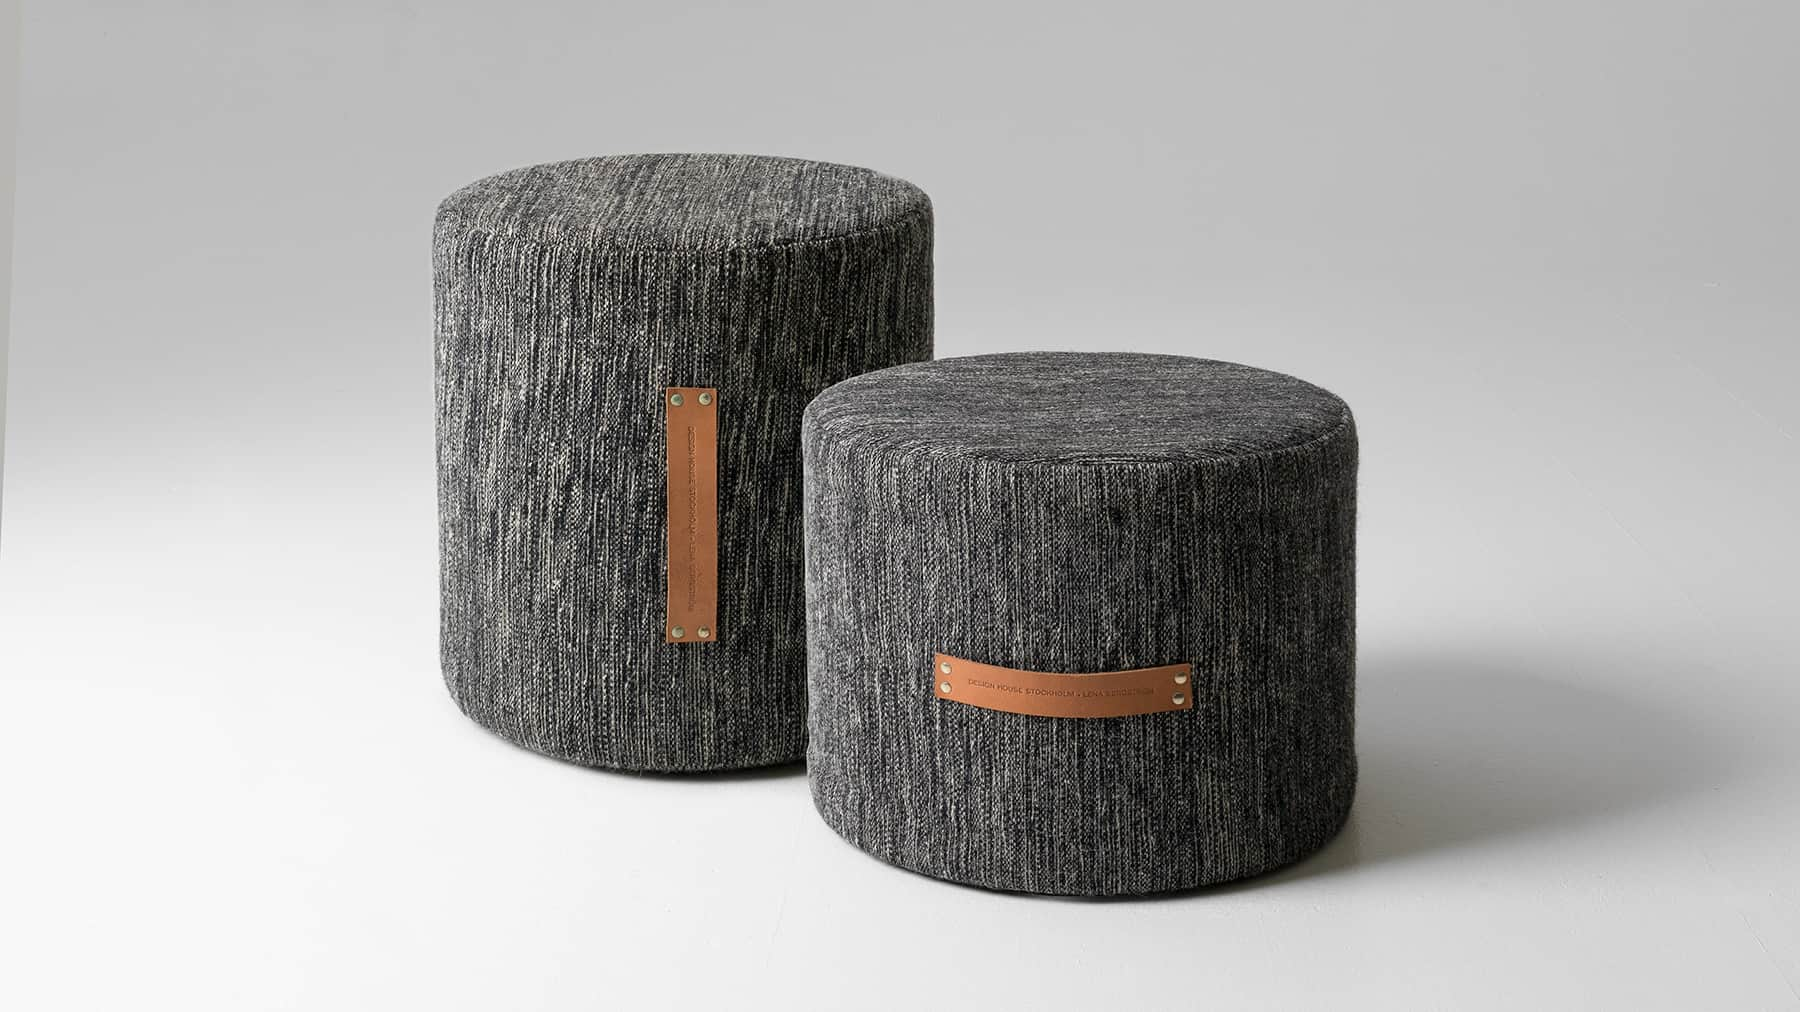 Pouf design upholstered fabric pouf spin by tacchini italia forniture